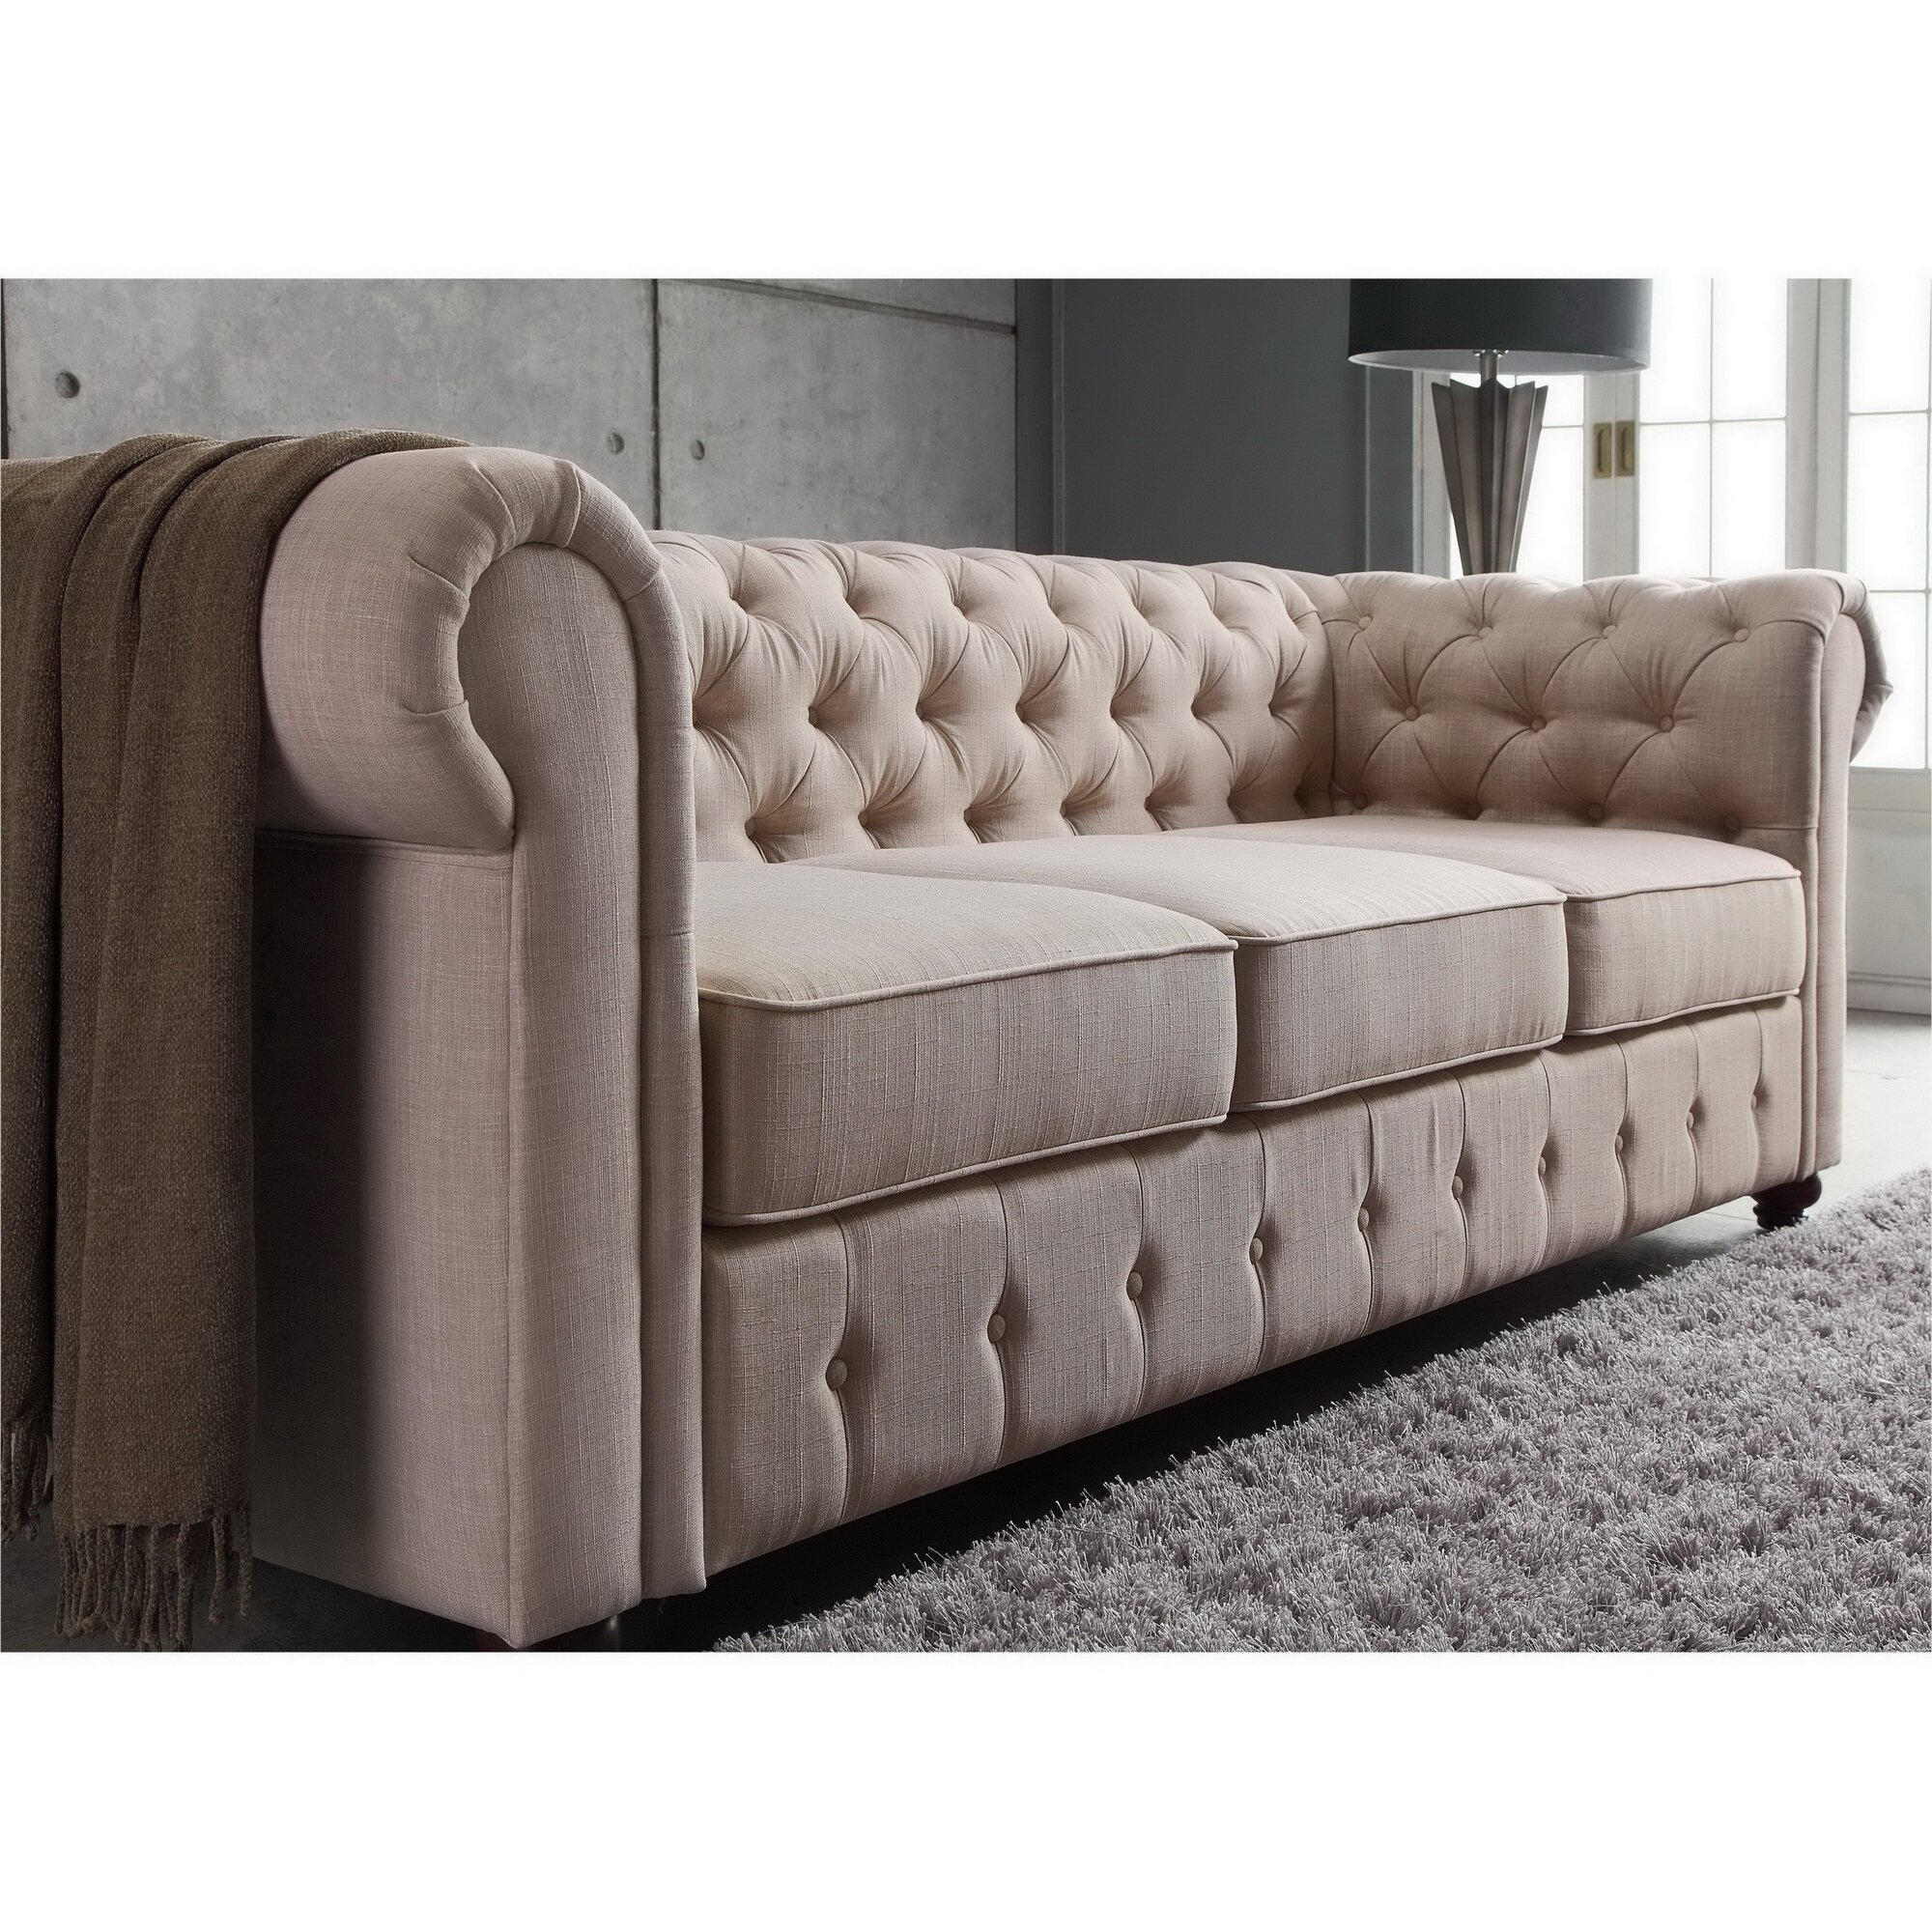 Mulhouse Furniture Garcia Chesterfield Sofa Amp Reviews